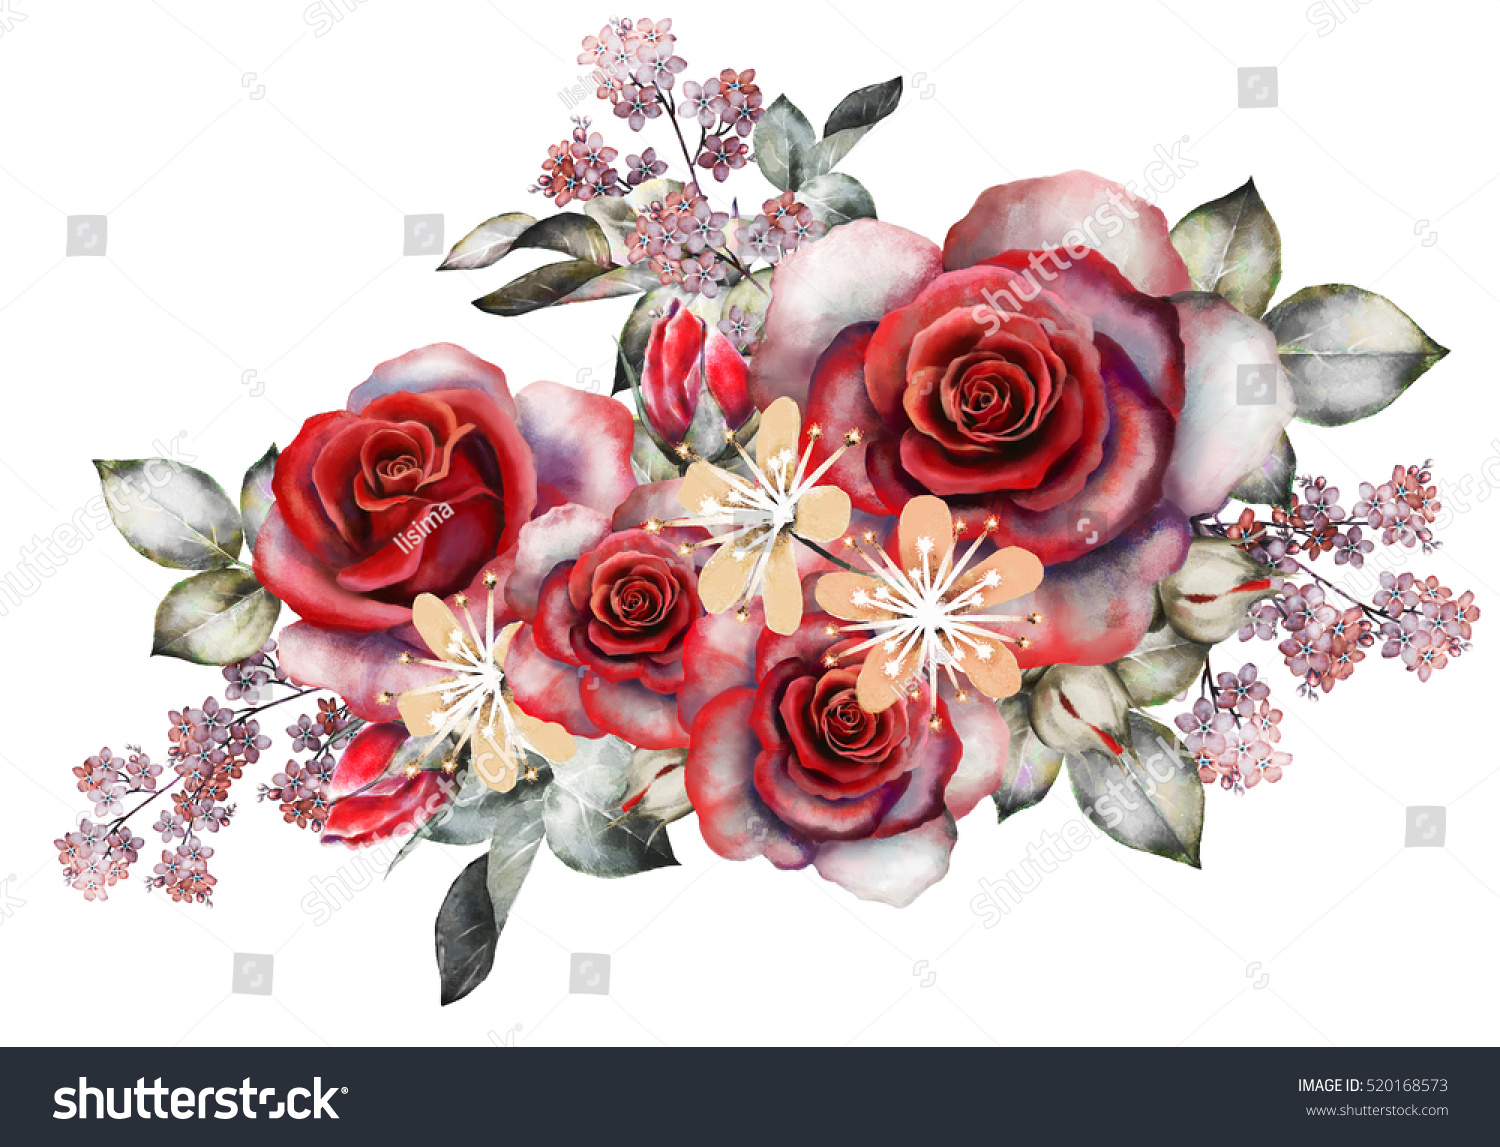 Watercolor Flowers Romantic Floral Illustration Red Stock ...